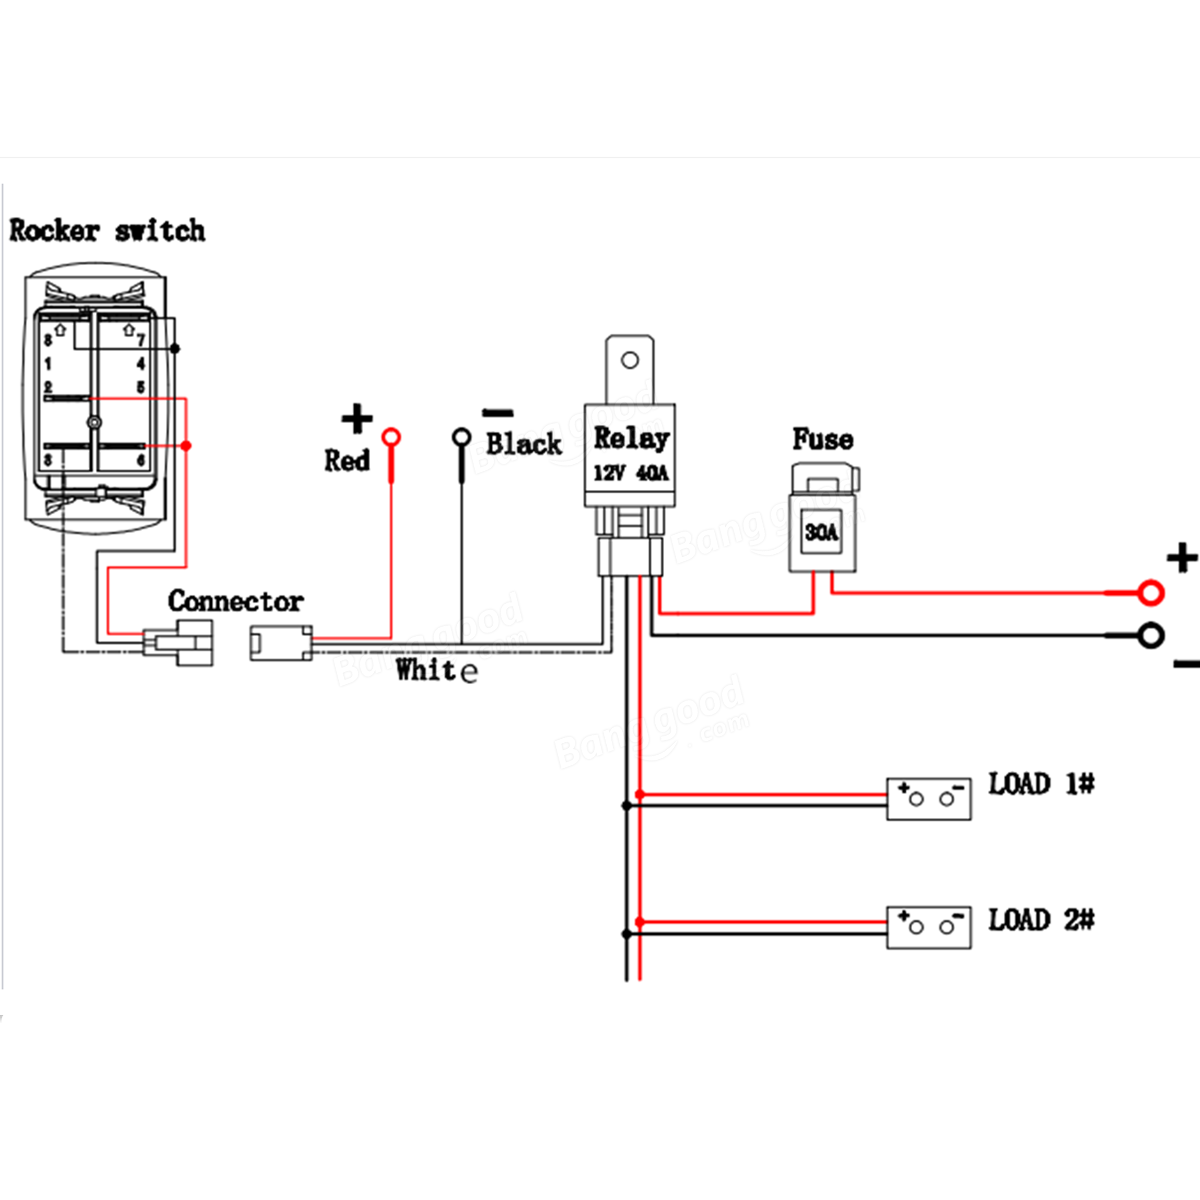 9d6bacef 8f68 448c b477 28191a6abe22 12v work light wiring diagram light switch wiring modeler \u2022 free 120V LED Wiring Diagram at fashall.co